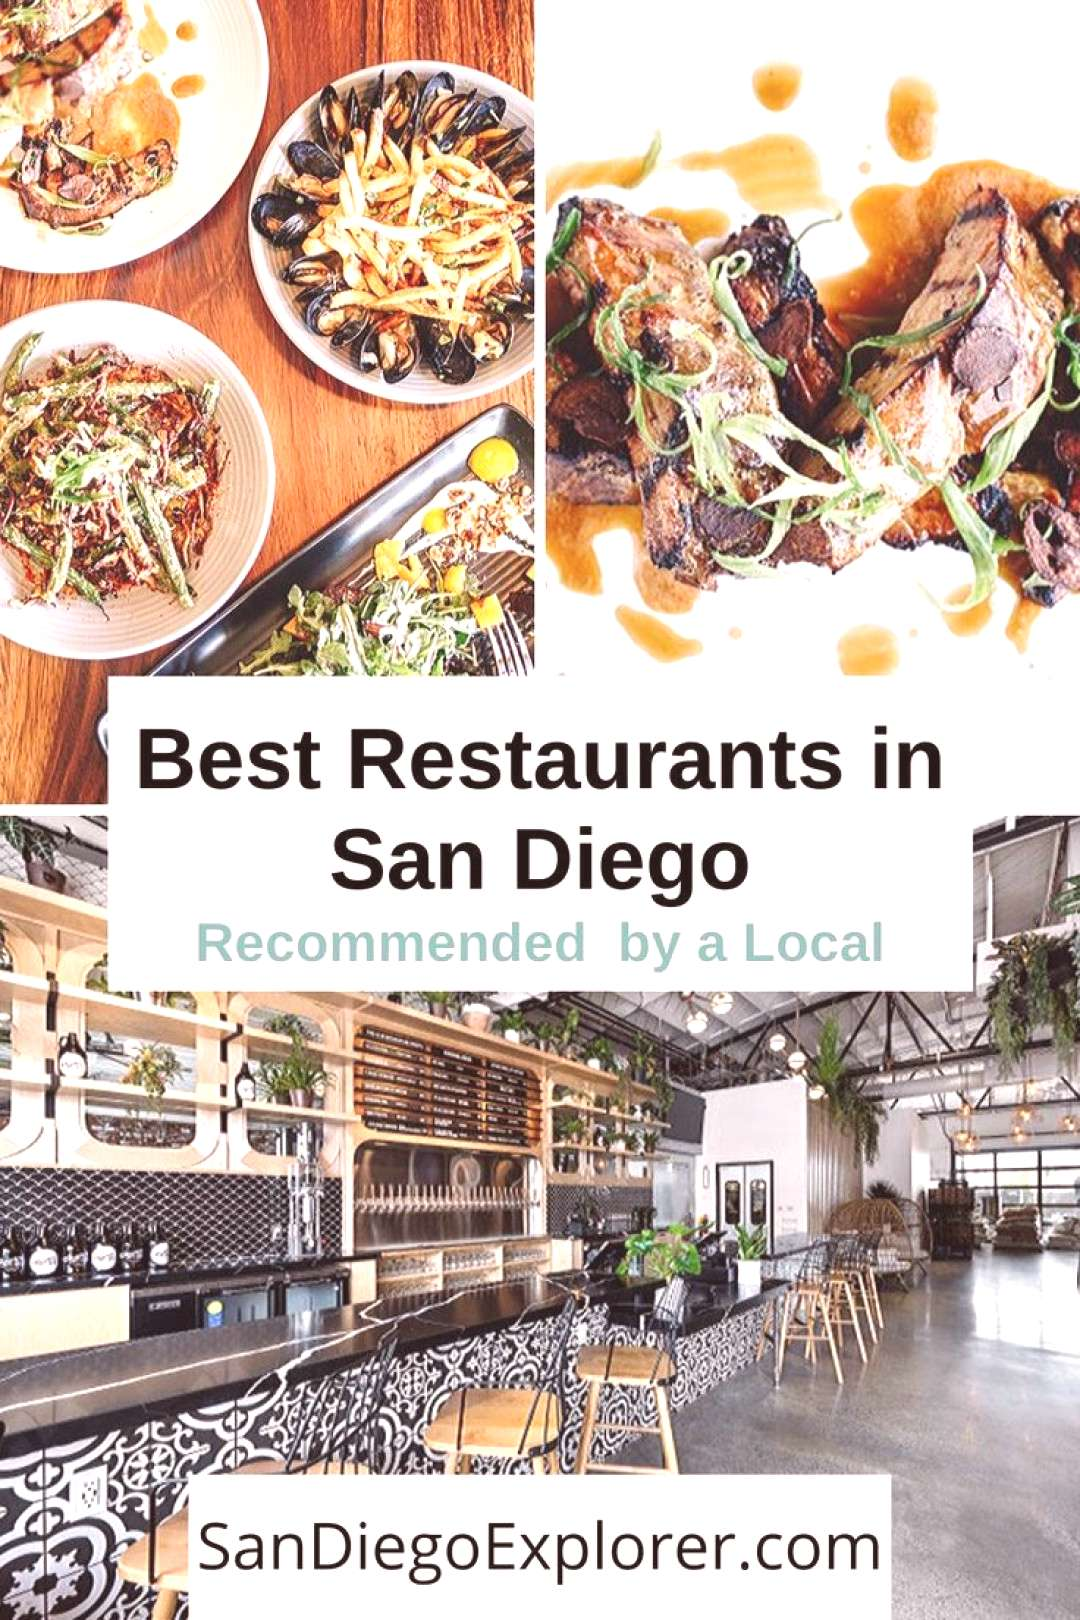 Best Restaurants in San Diego by Neighborhood - The Ultimate Foodie Guide Are you looking for the a